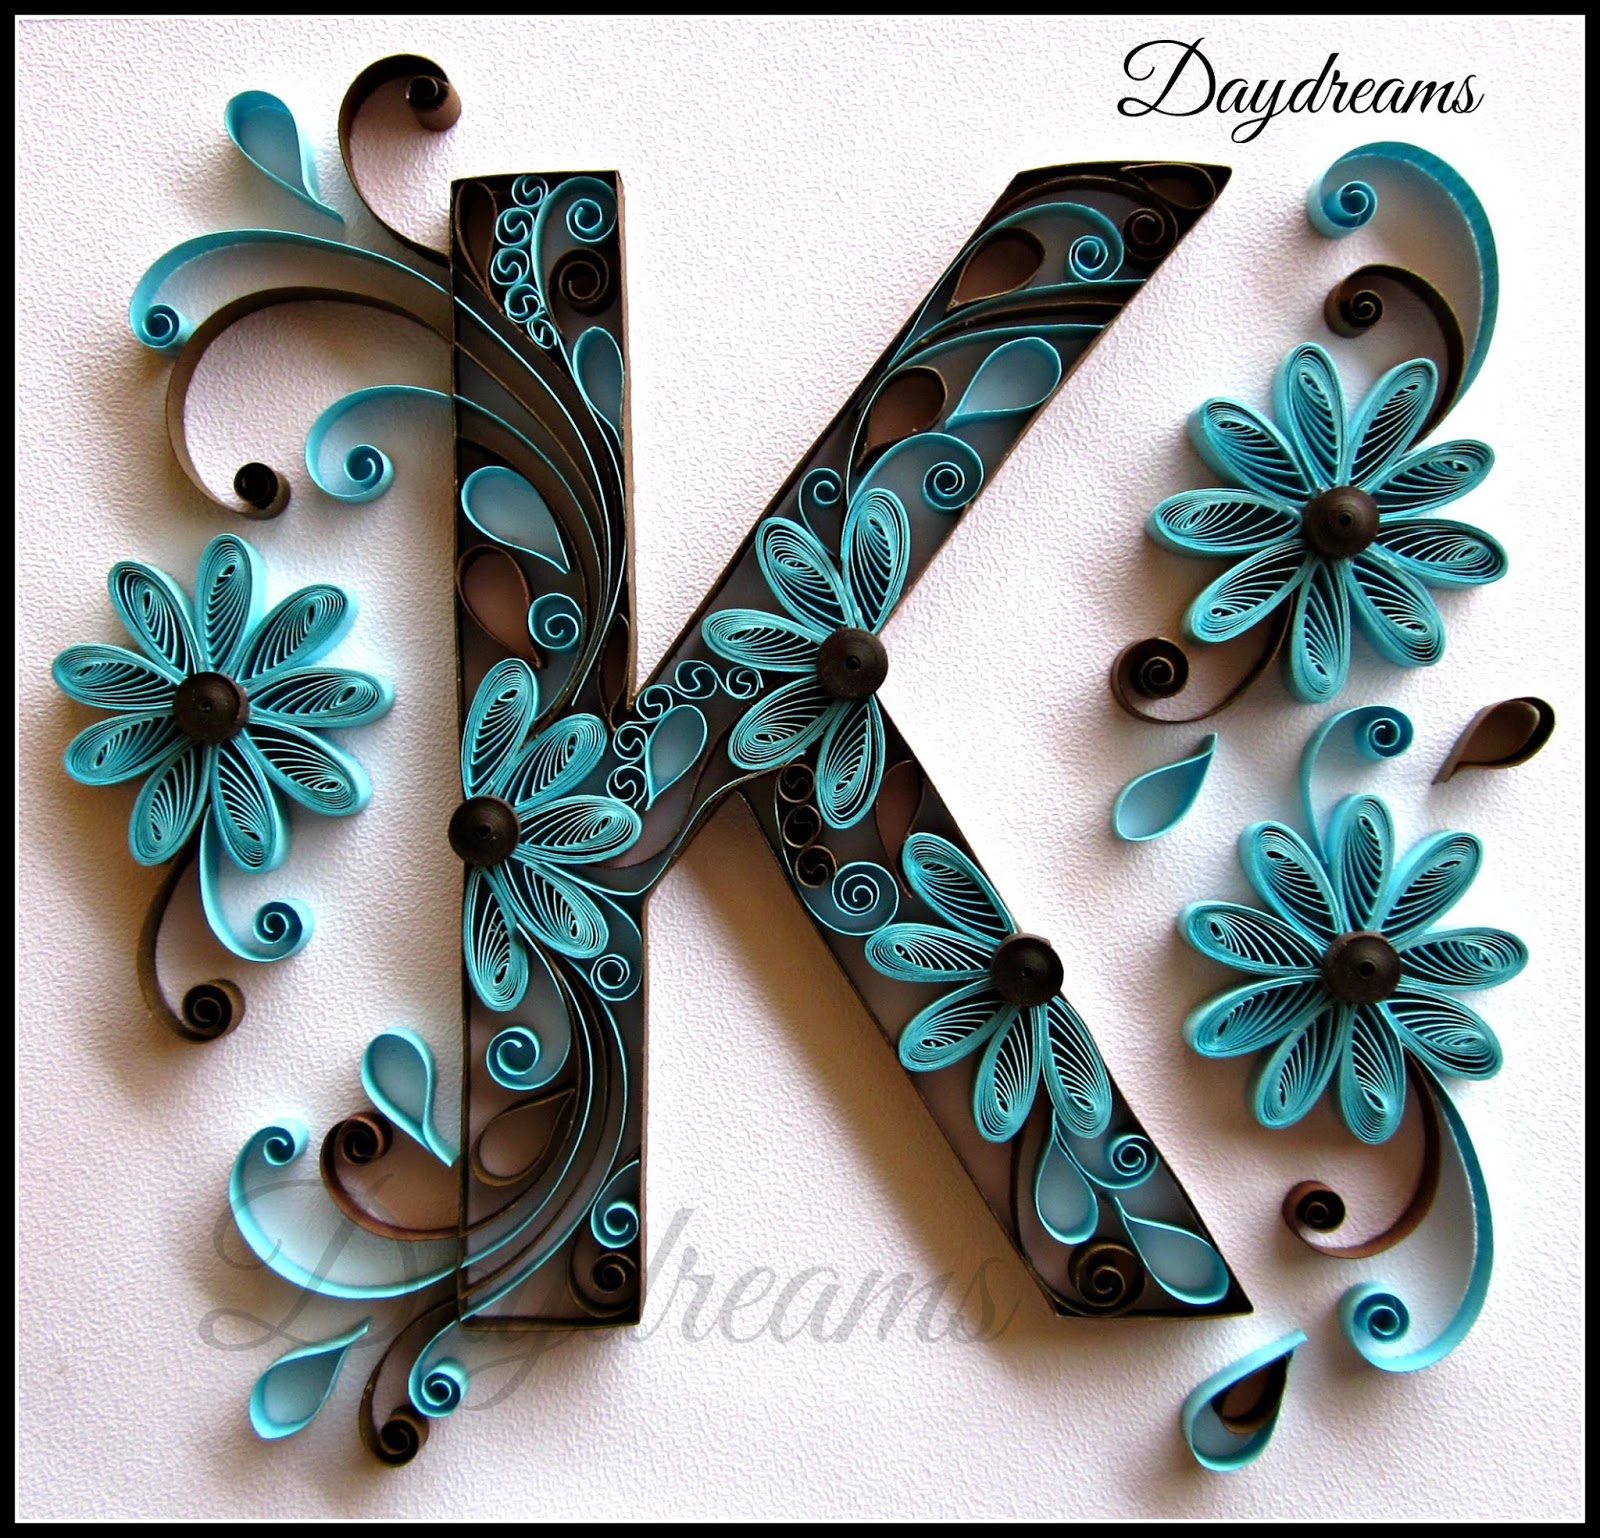 Quilled%2BK Quilling Letter Templates Designs on